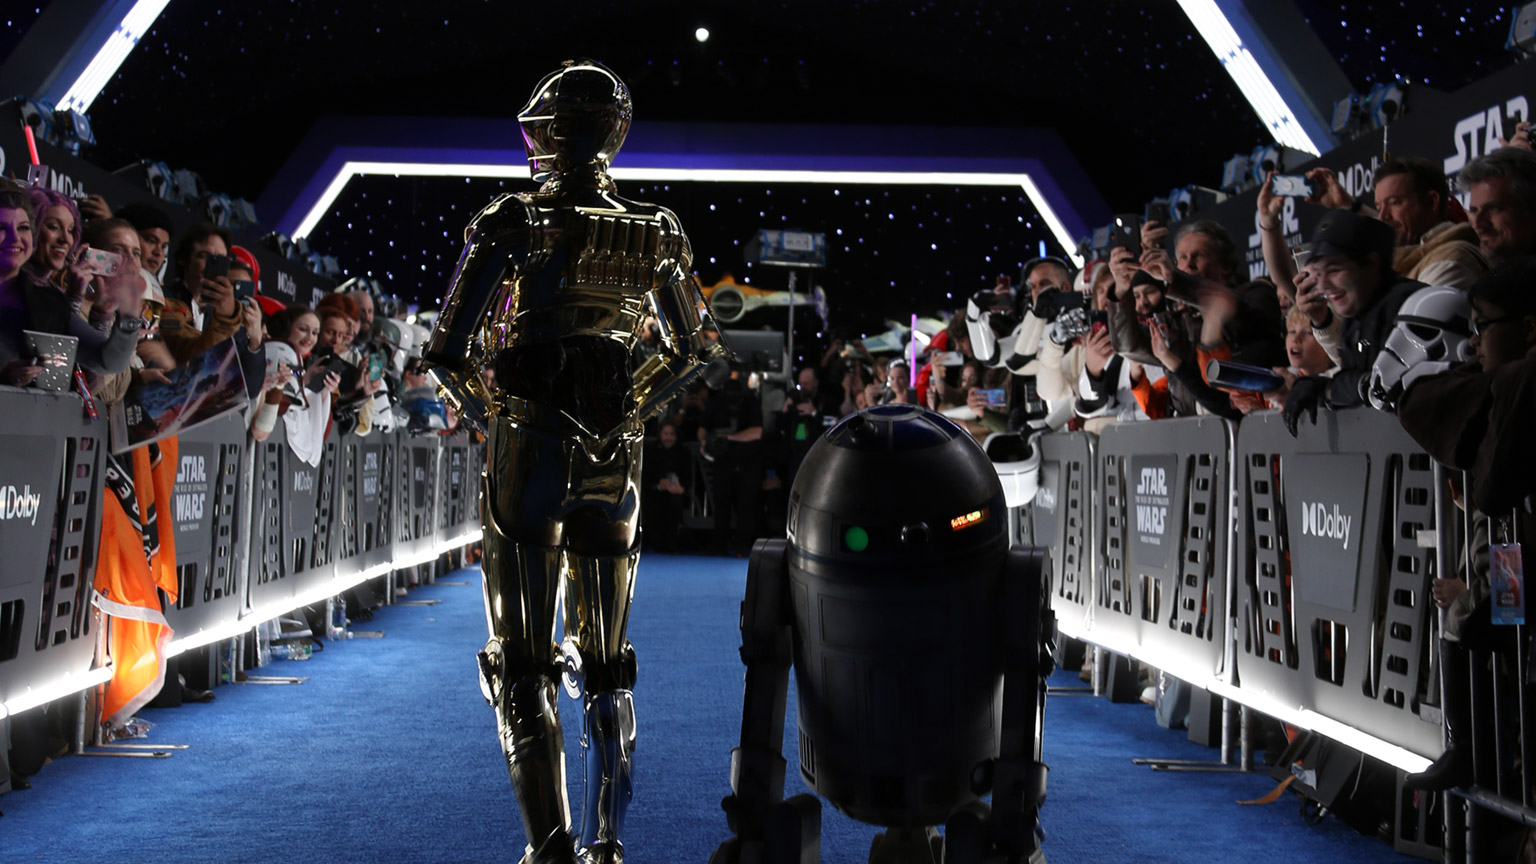 Fan greet R2-D2 and C-3PO on the blue carpet.